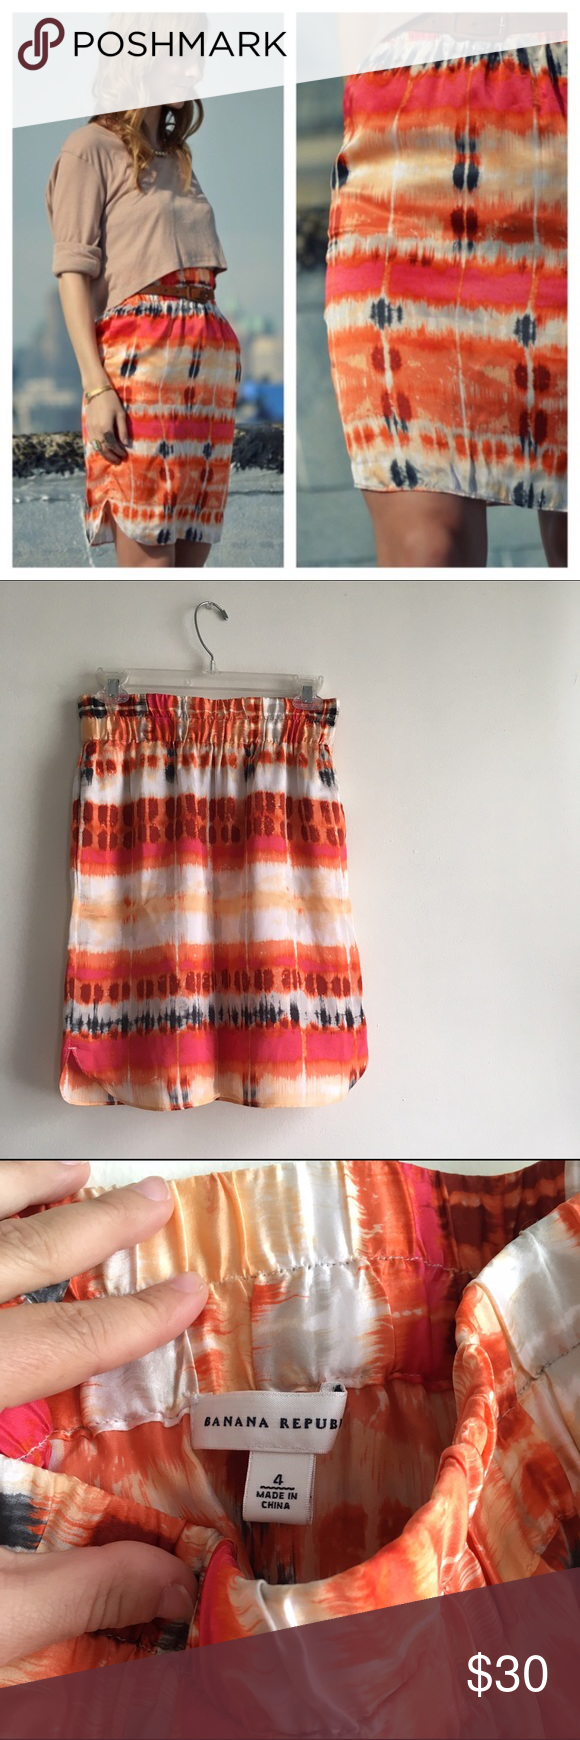 Gorgeous silk Banana Republic skirt! This colorful beauty is up for grabs! The watercolor/tie-dye print is even more stunning in person... deep oranges, bright pink, creams, and navy colors. You could pair this with a beige top and strappy heels, or dress it down. Elastic waistline and POCKETS!! Size 4. Perfect condition. 💕 Banana Republic Skirts